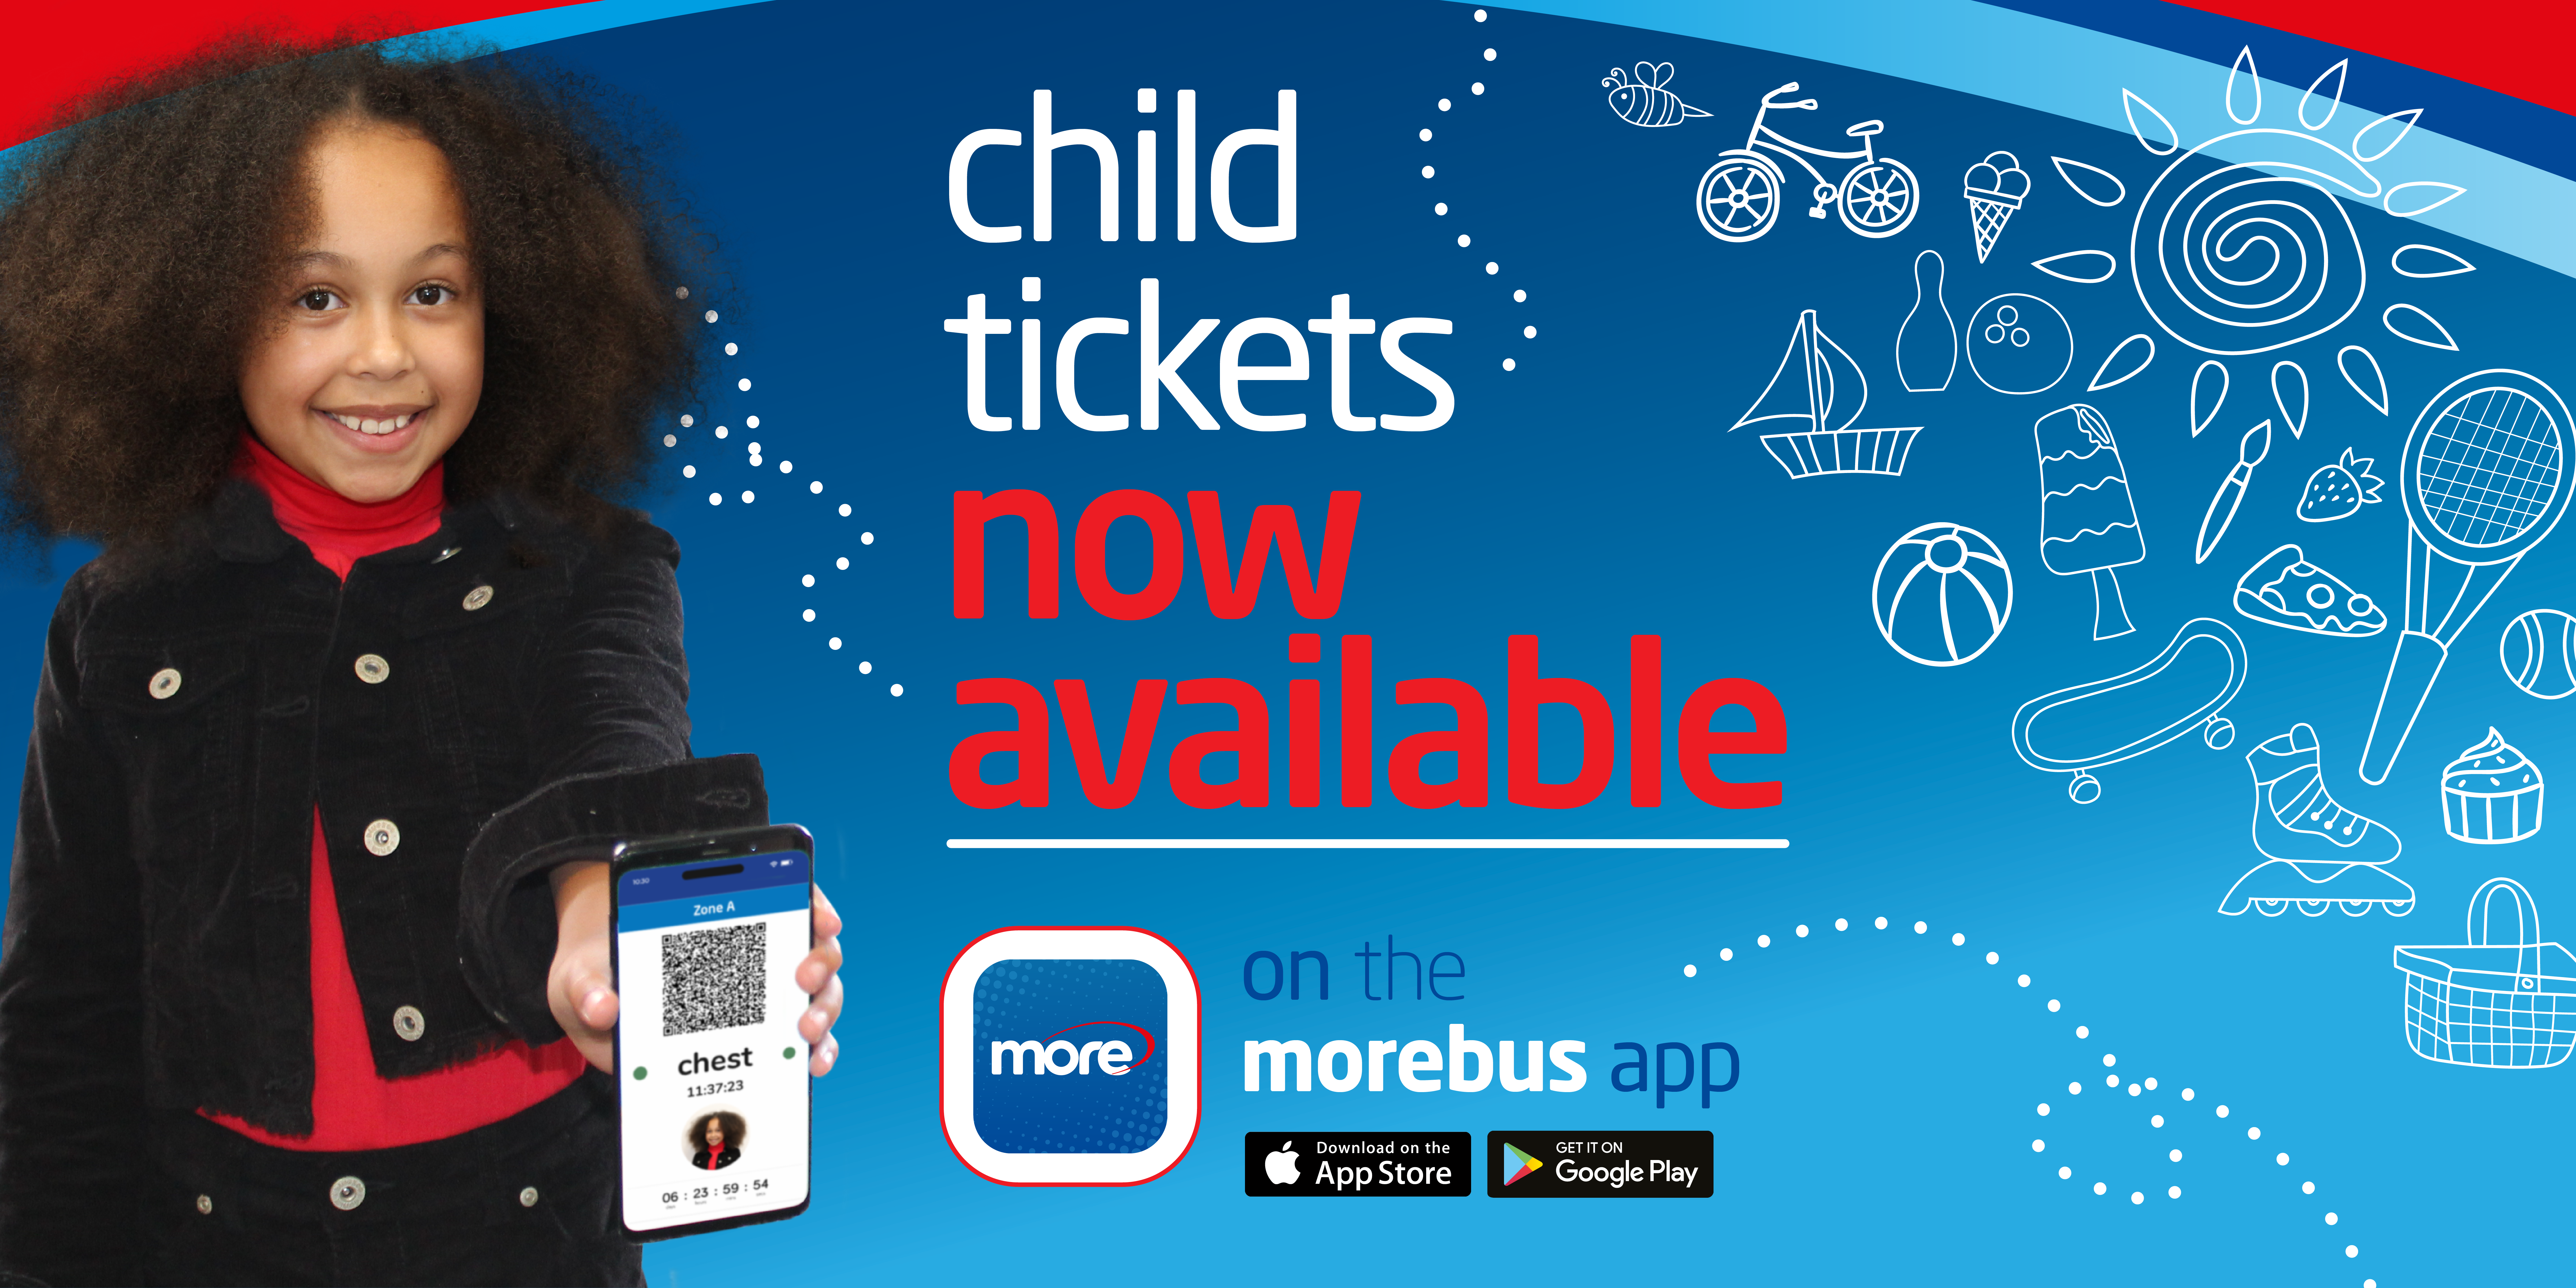 child tickets are now available on the morebus app